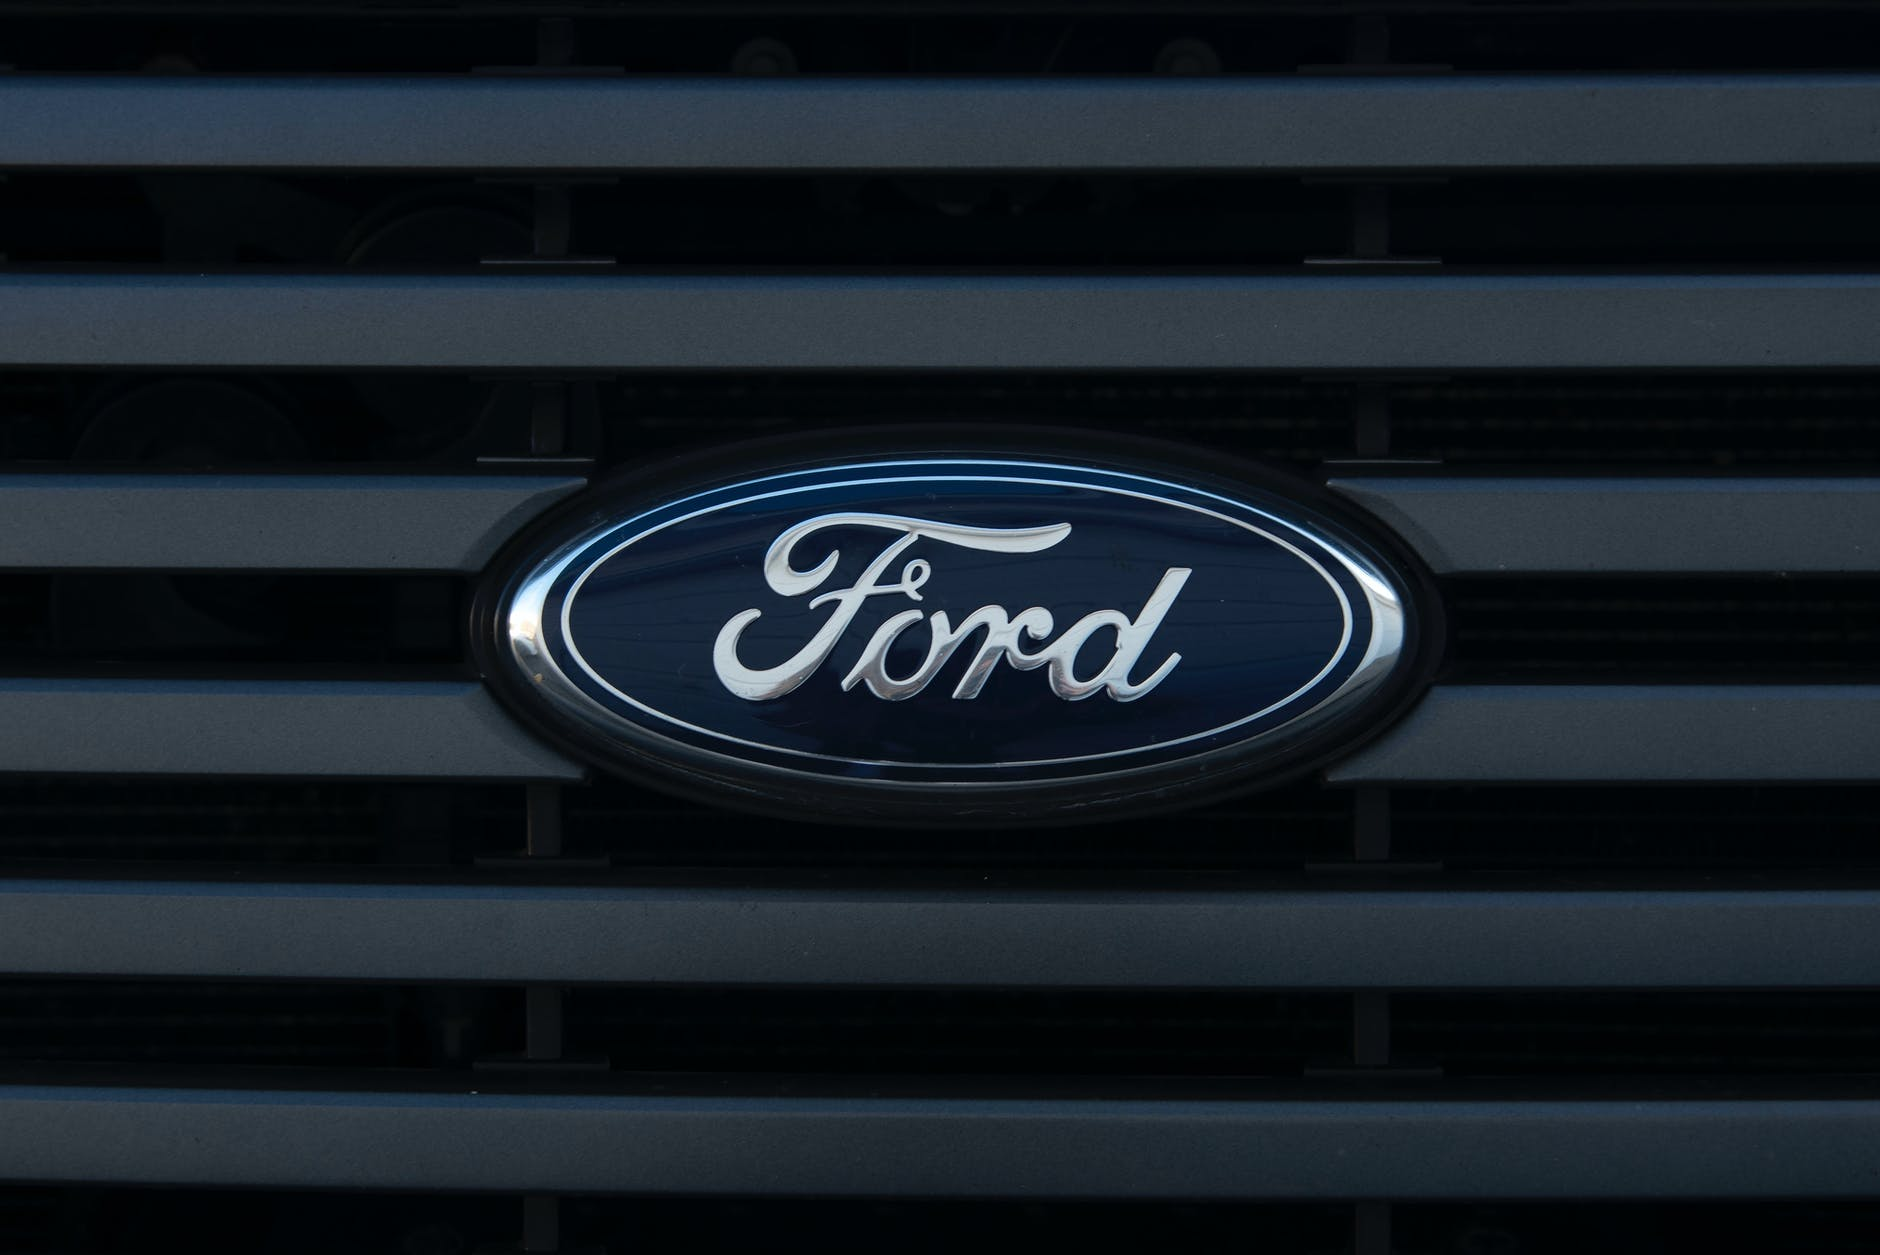 Ford Motor Company (NYSE:F) Reports Stellar Q3 Results Amid Bronco SUV Reservations Surge